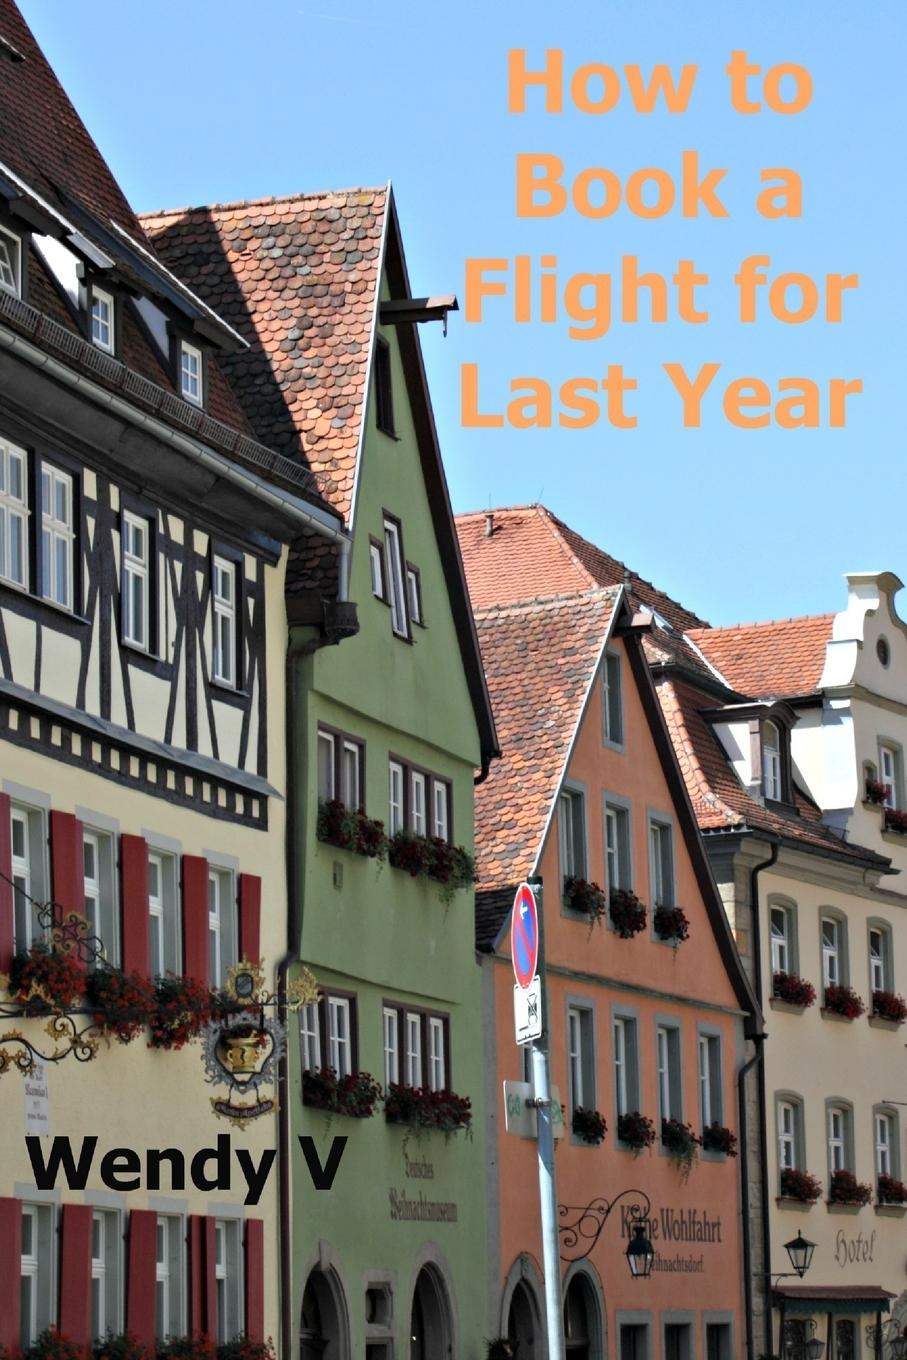 Wendy V How to Book a Flight for Last Year